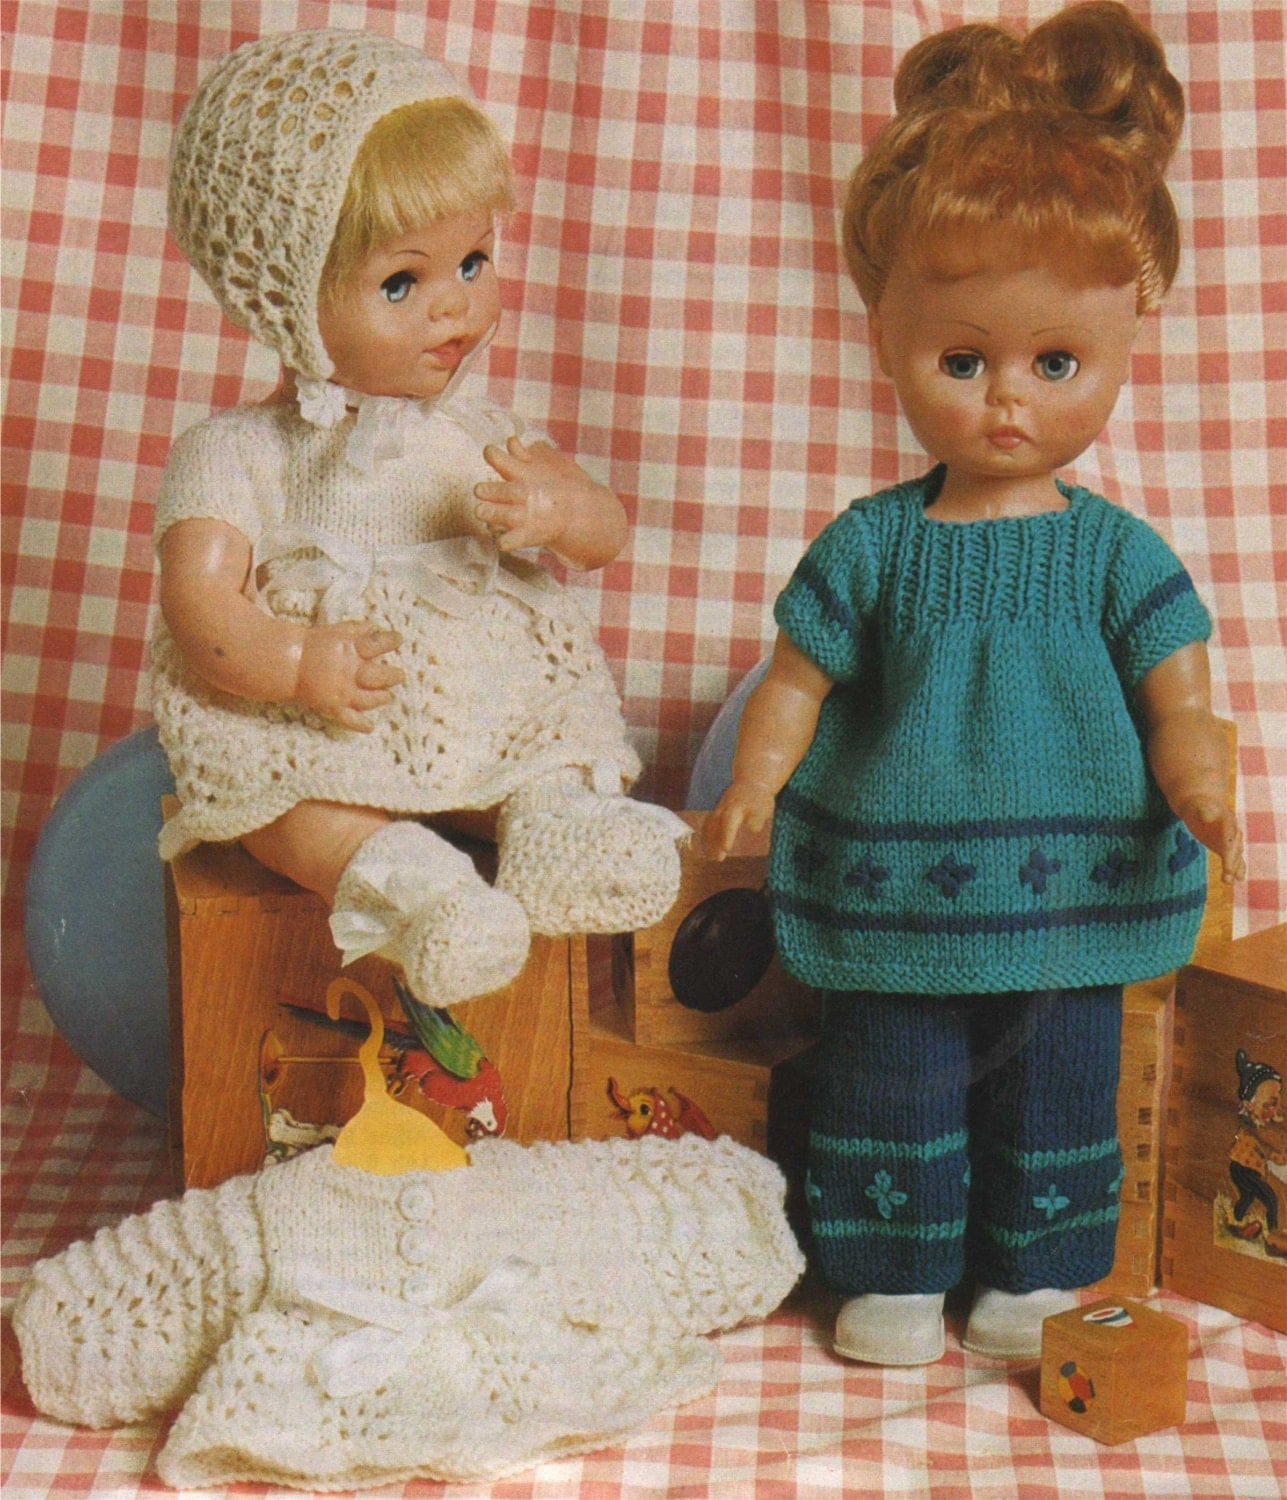 Knitting Patterns For Dolls Clothes 12 Inch : Dolls Clothes PDF Knitting Pattern : 14 inch Doll and 12 inch